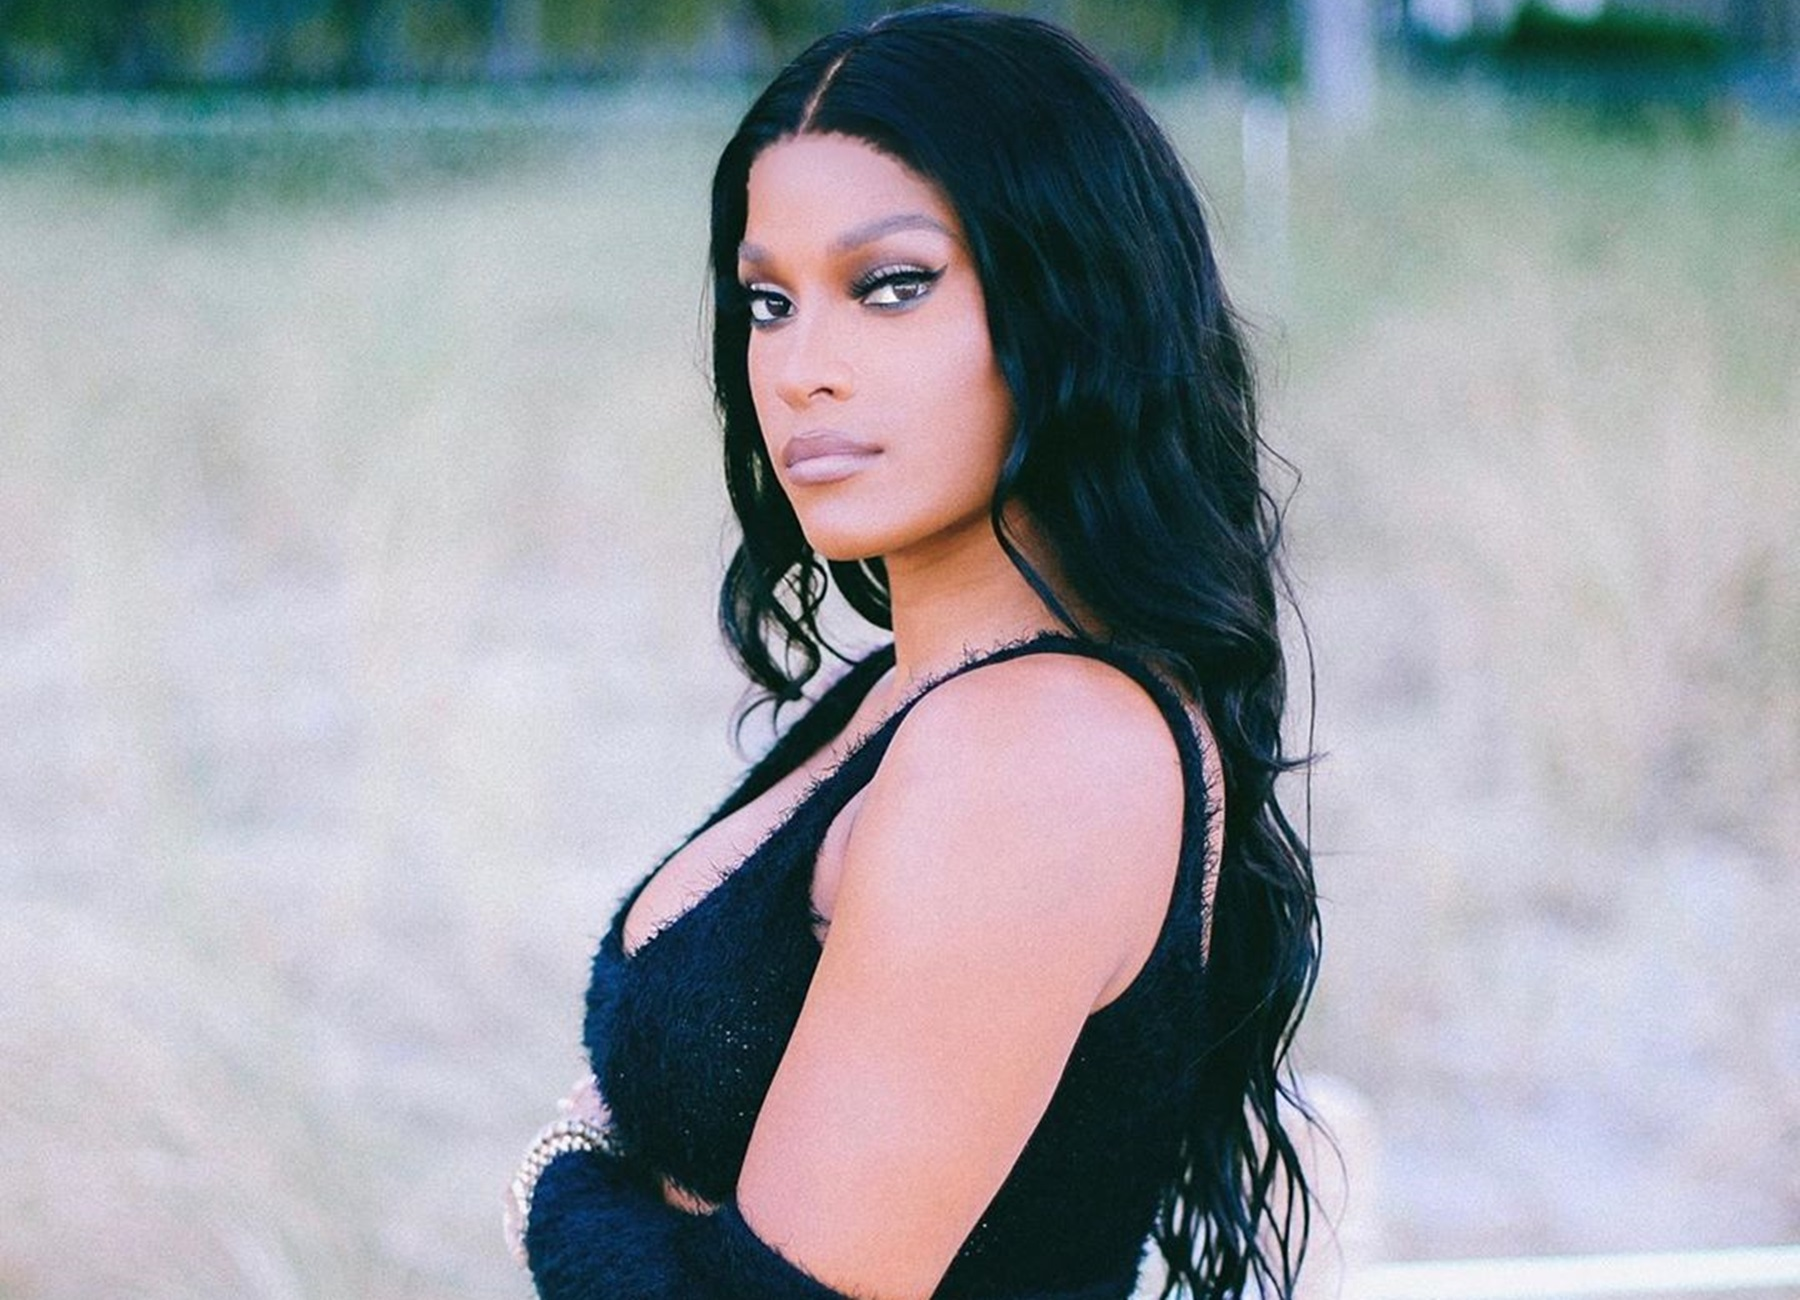 Joseline Hernandez Love And Hip Hop Miami